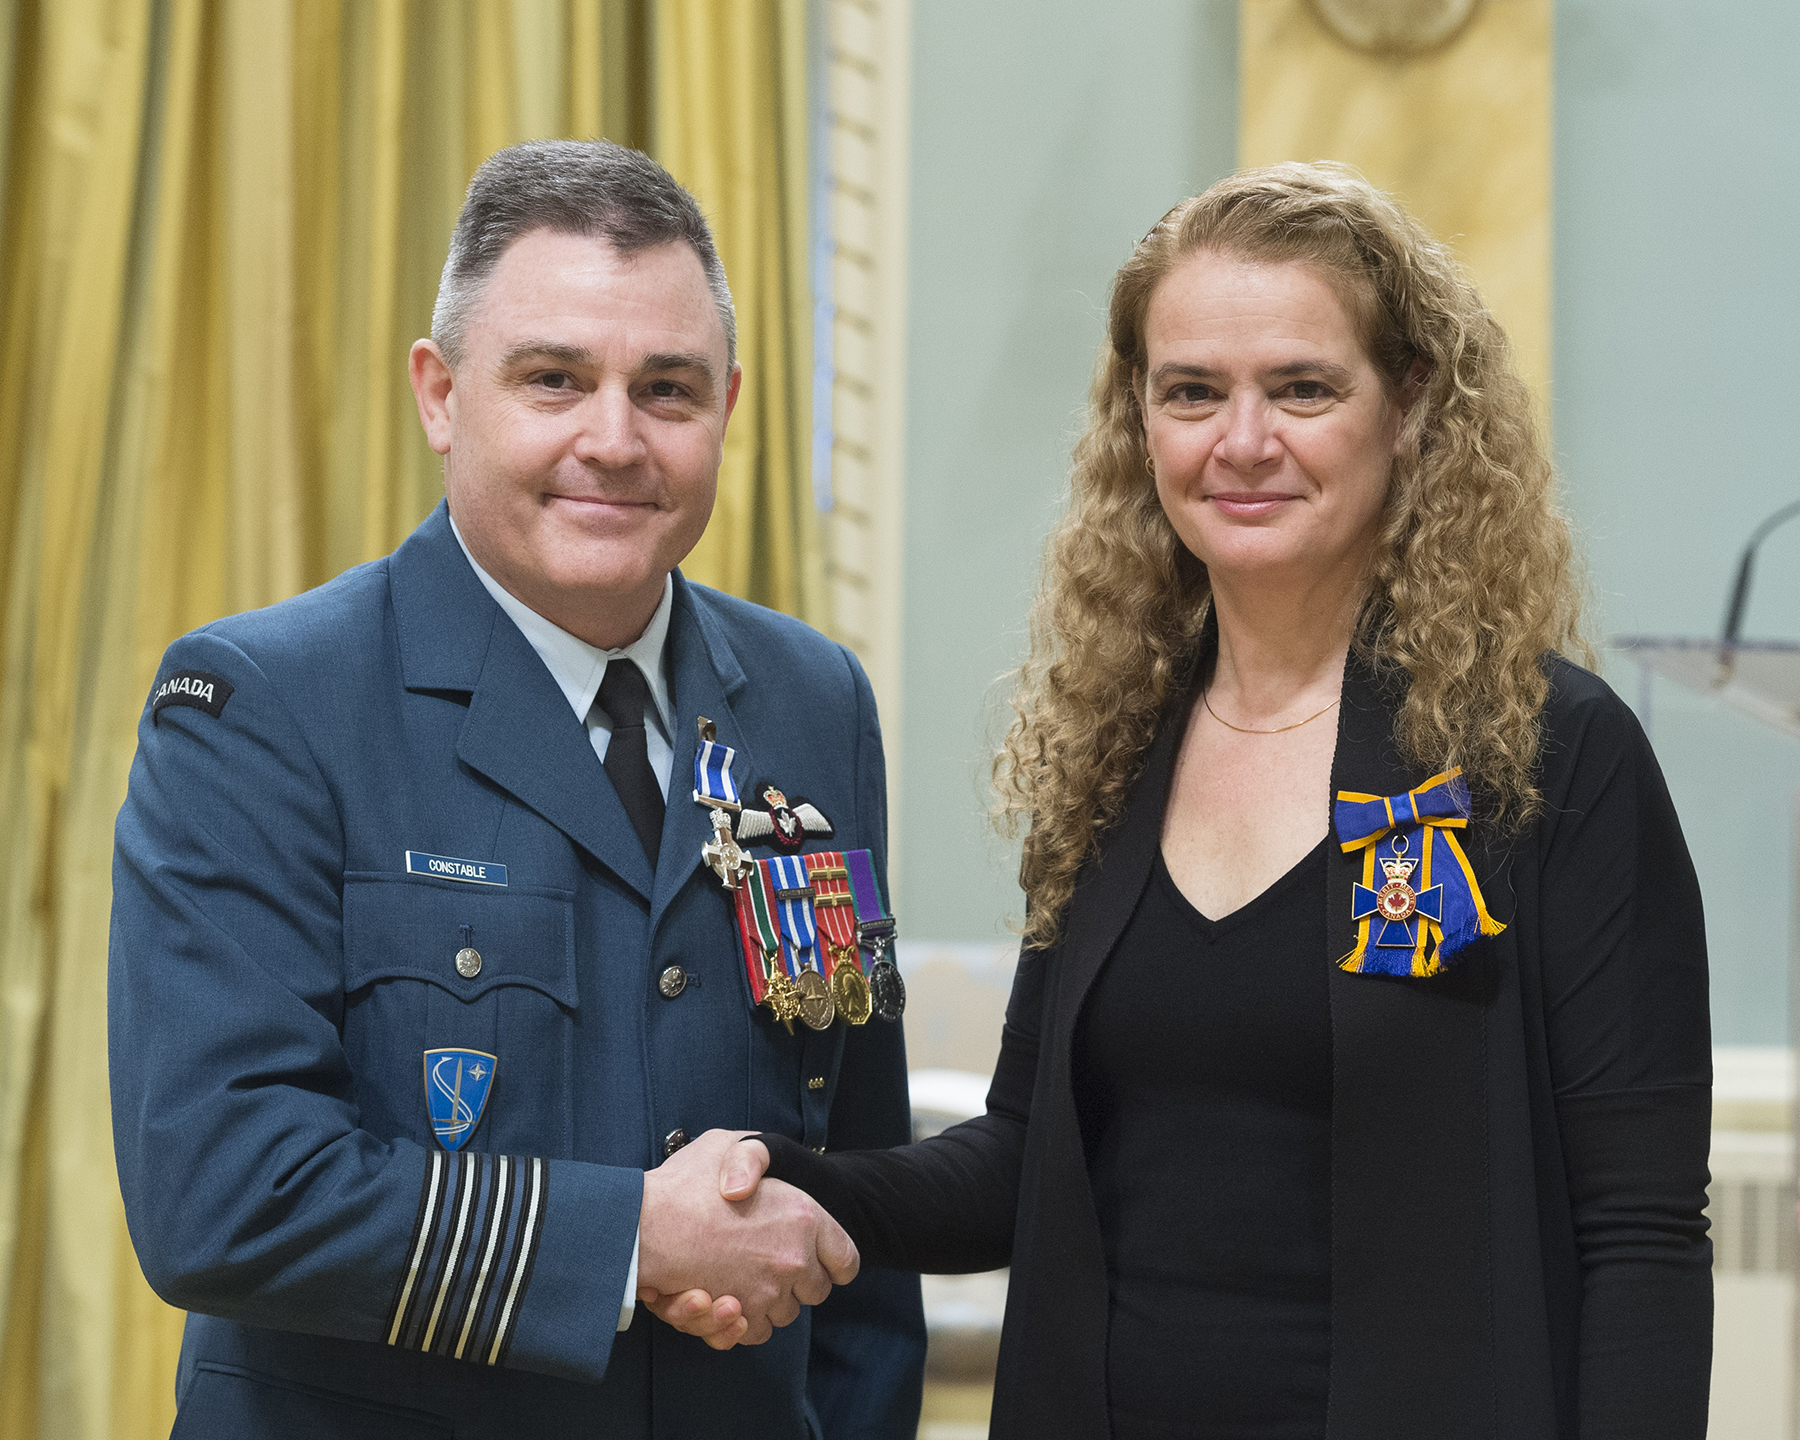 Colonel Daniel Stewart Constable receives the Meritorious Service Cross (Military Division) from Governor General and Commander-in-Chief of Canada Julie Payette on February 28, 2018. PHOTO: Sergeant Johanie Maheu, OSGG, GG05-2018-0066-010